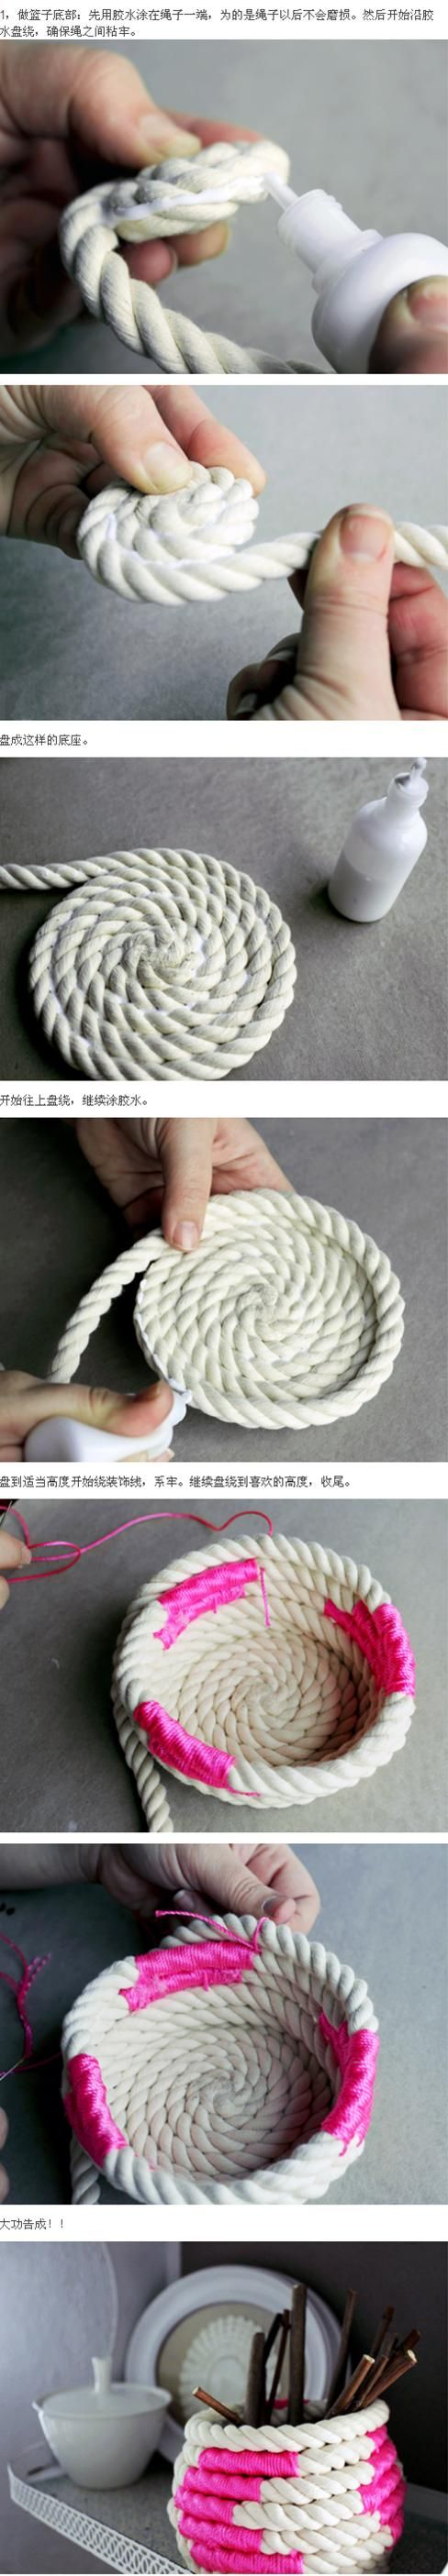 Rope bowl. Love it!